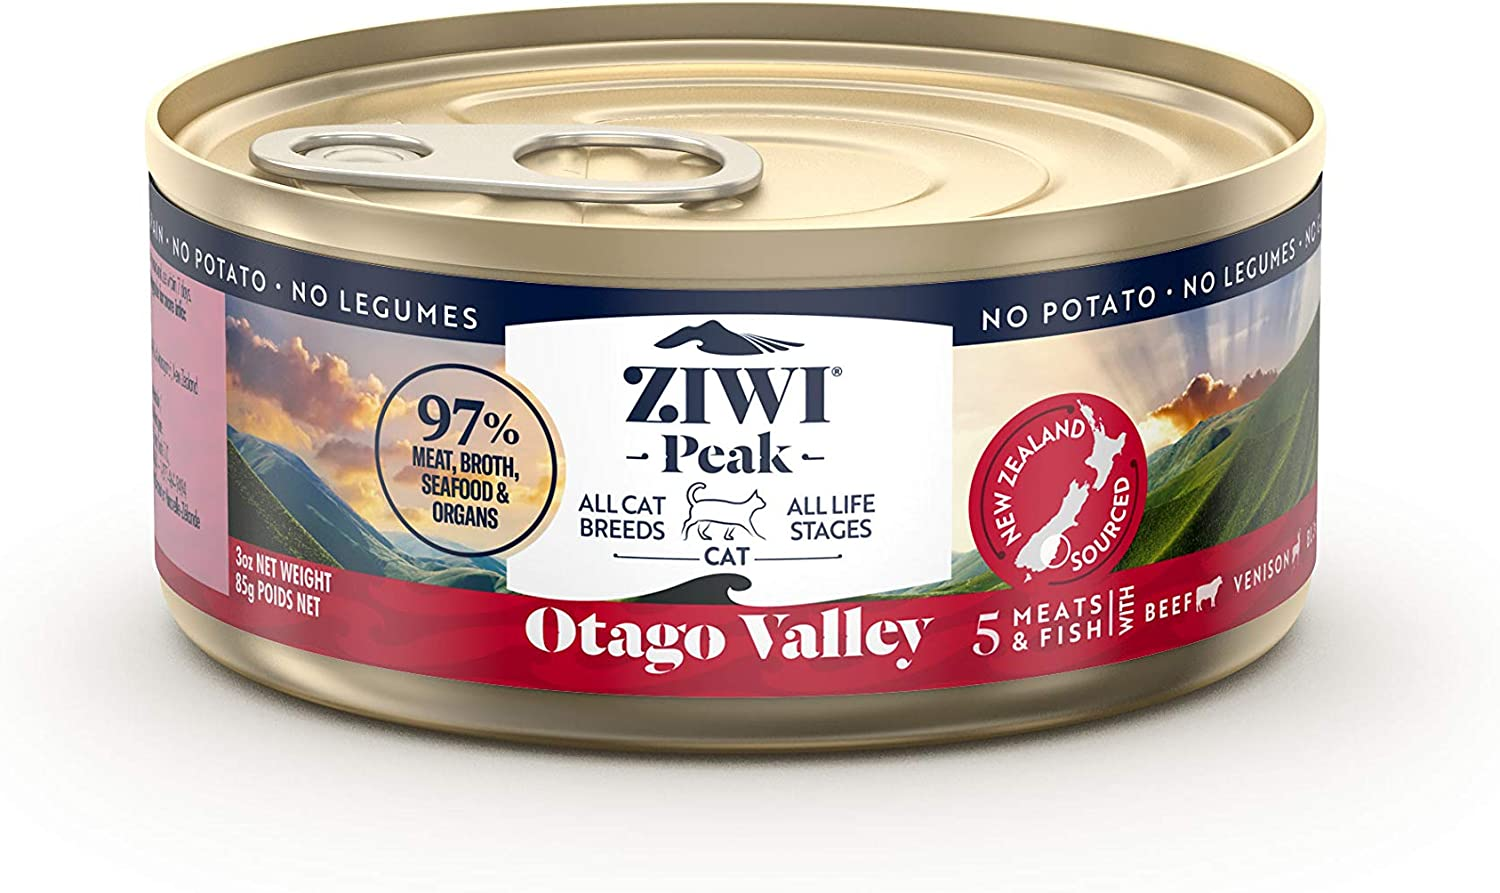 ZIWI Peak Provenance Canned Wet Cat Food – All Natural, High Protein, Grain Free with Superfoods (Otago Valley, Case of 24, 3oz Cans)